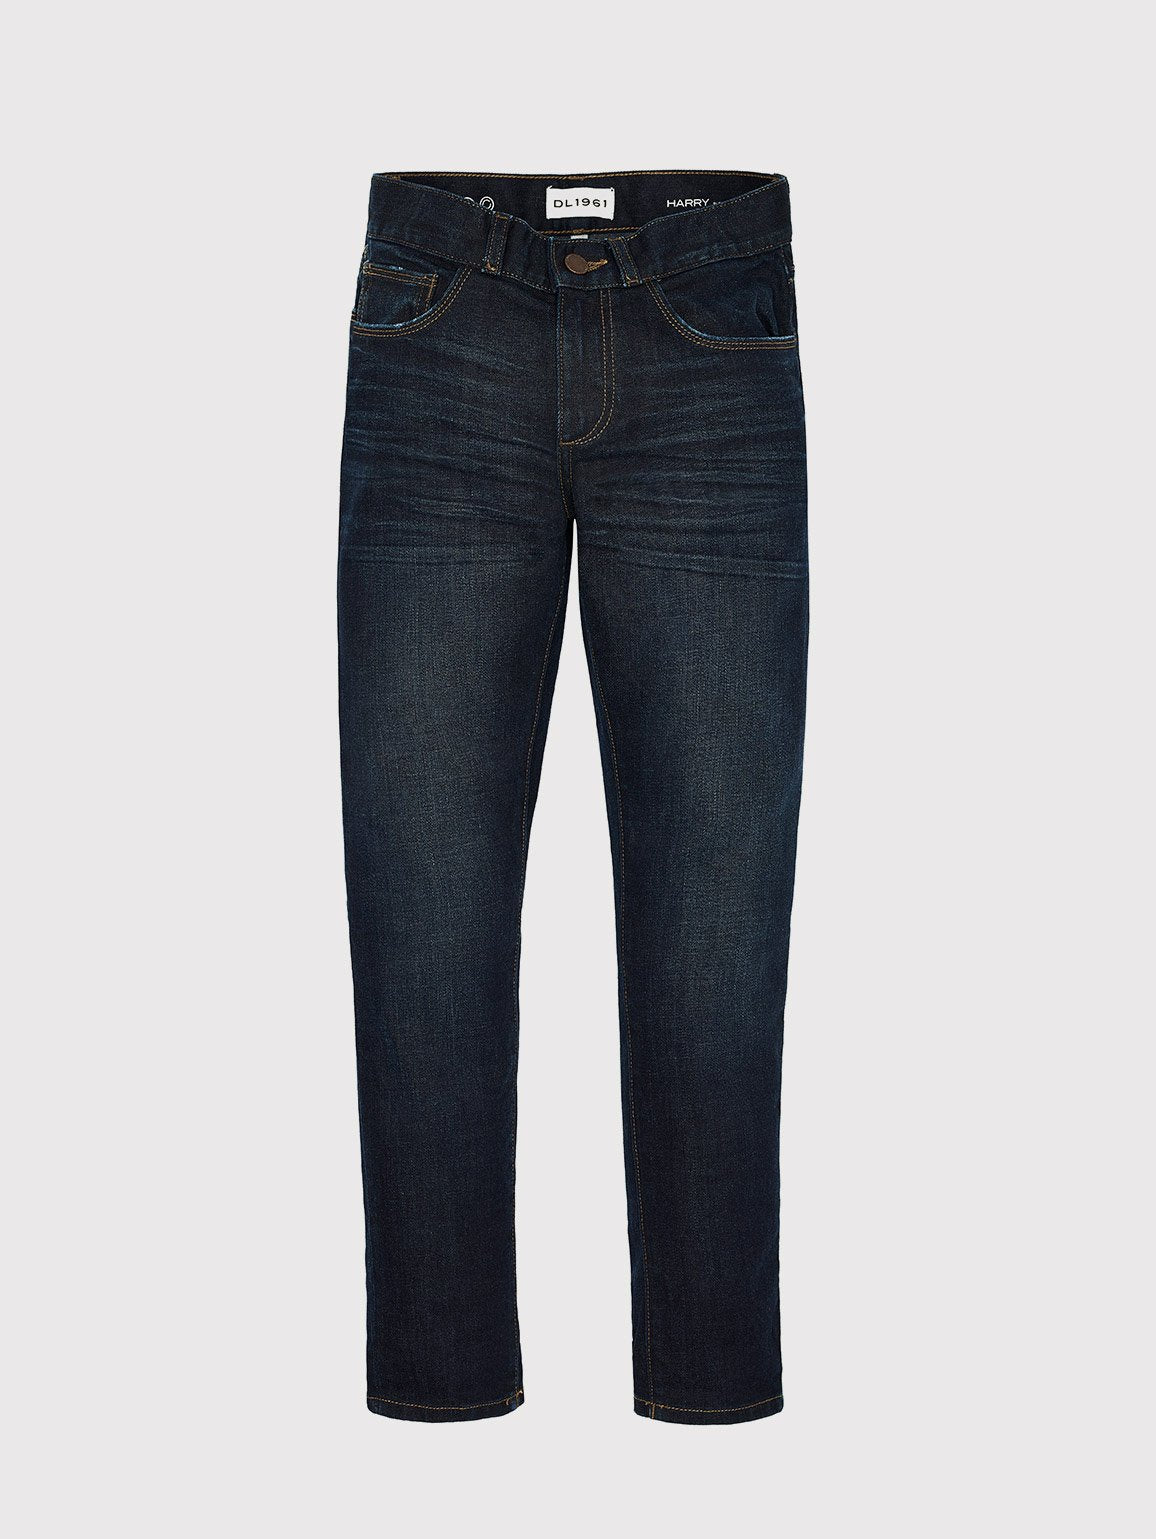 Image of Harry/B Slouchy Skinny / Ridge